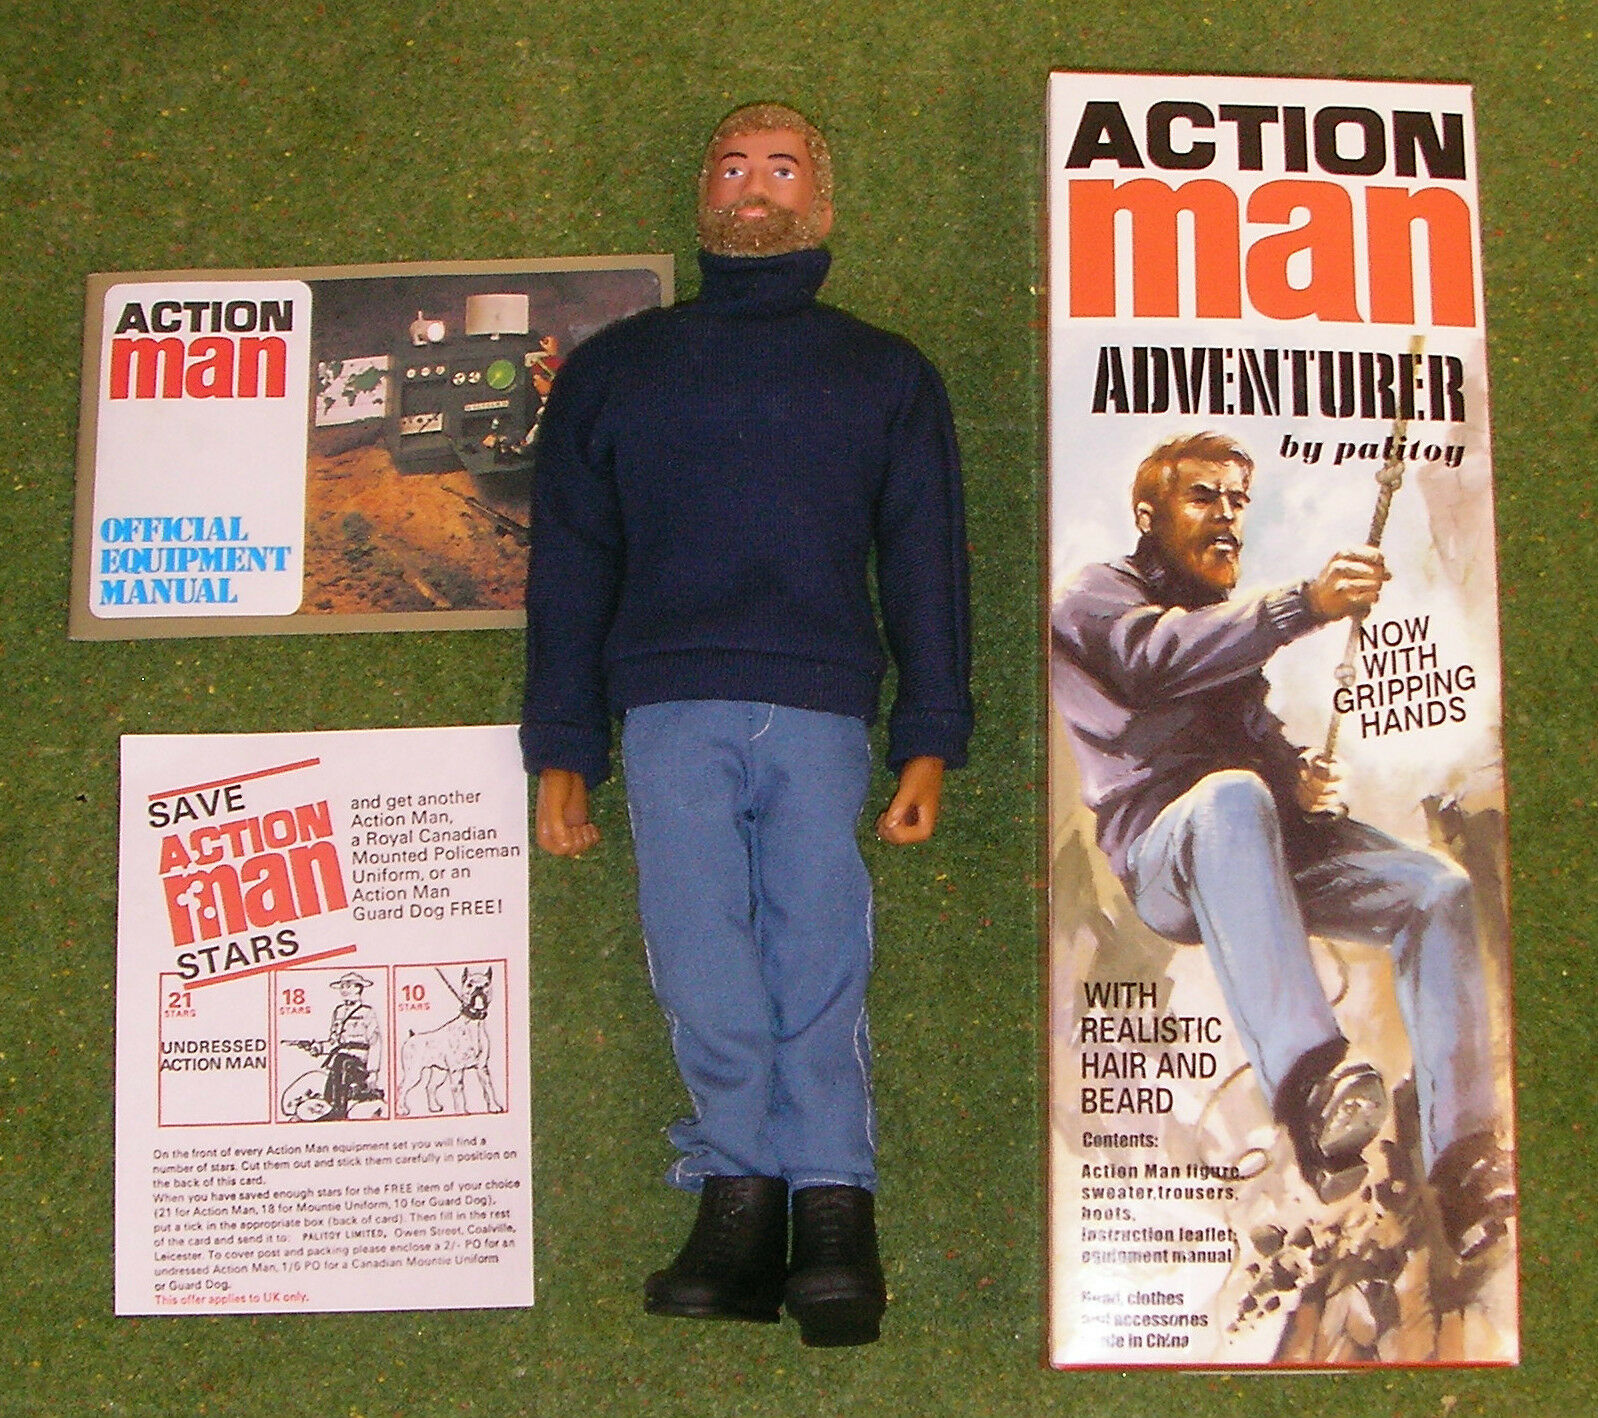 ACTION MAN 40th BOXED ADVENTURER BLONDE BEARDED w  GRIPPING HANDS